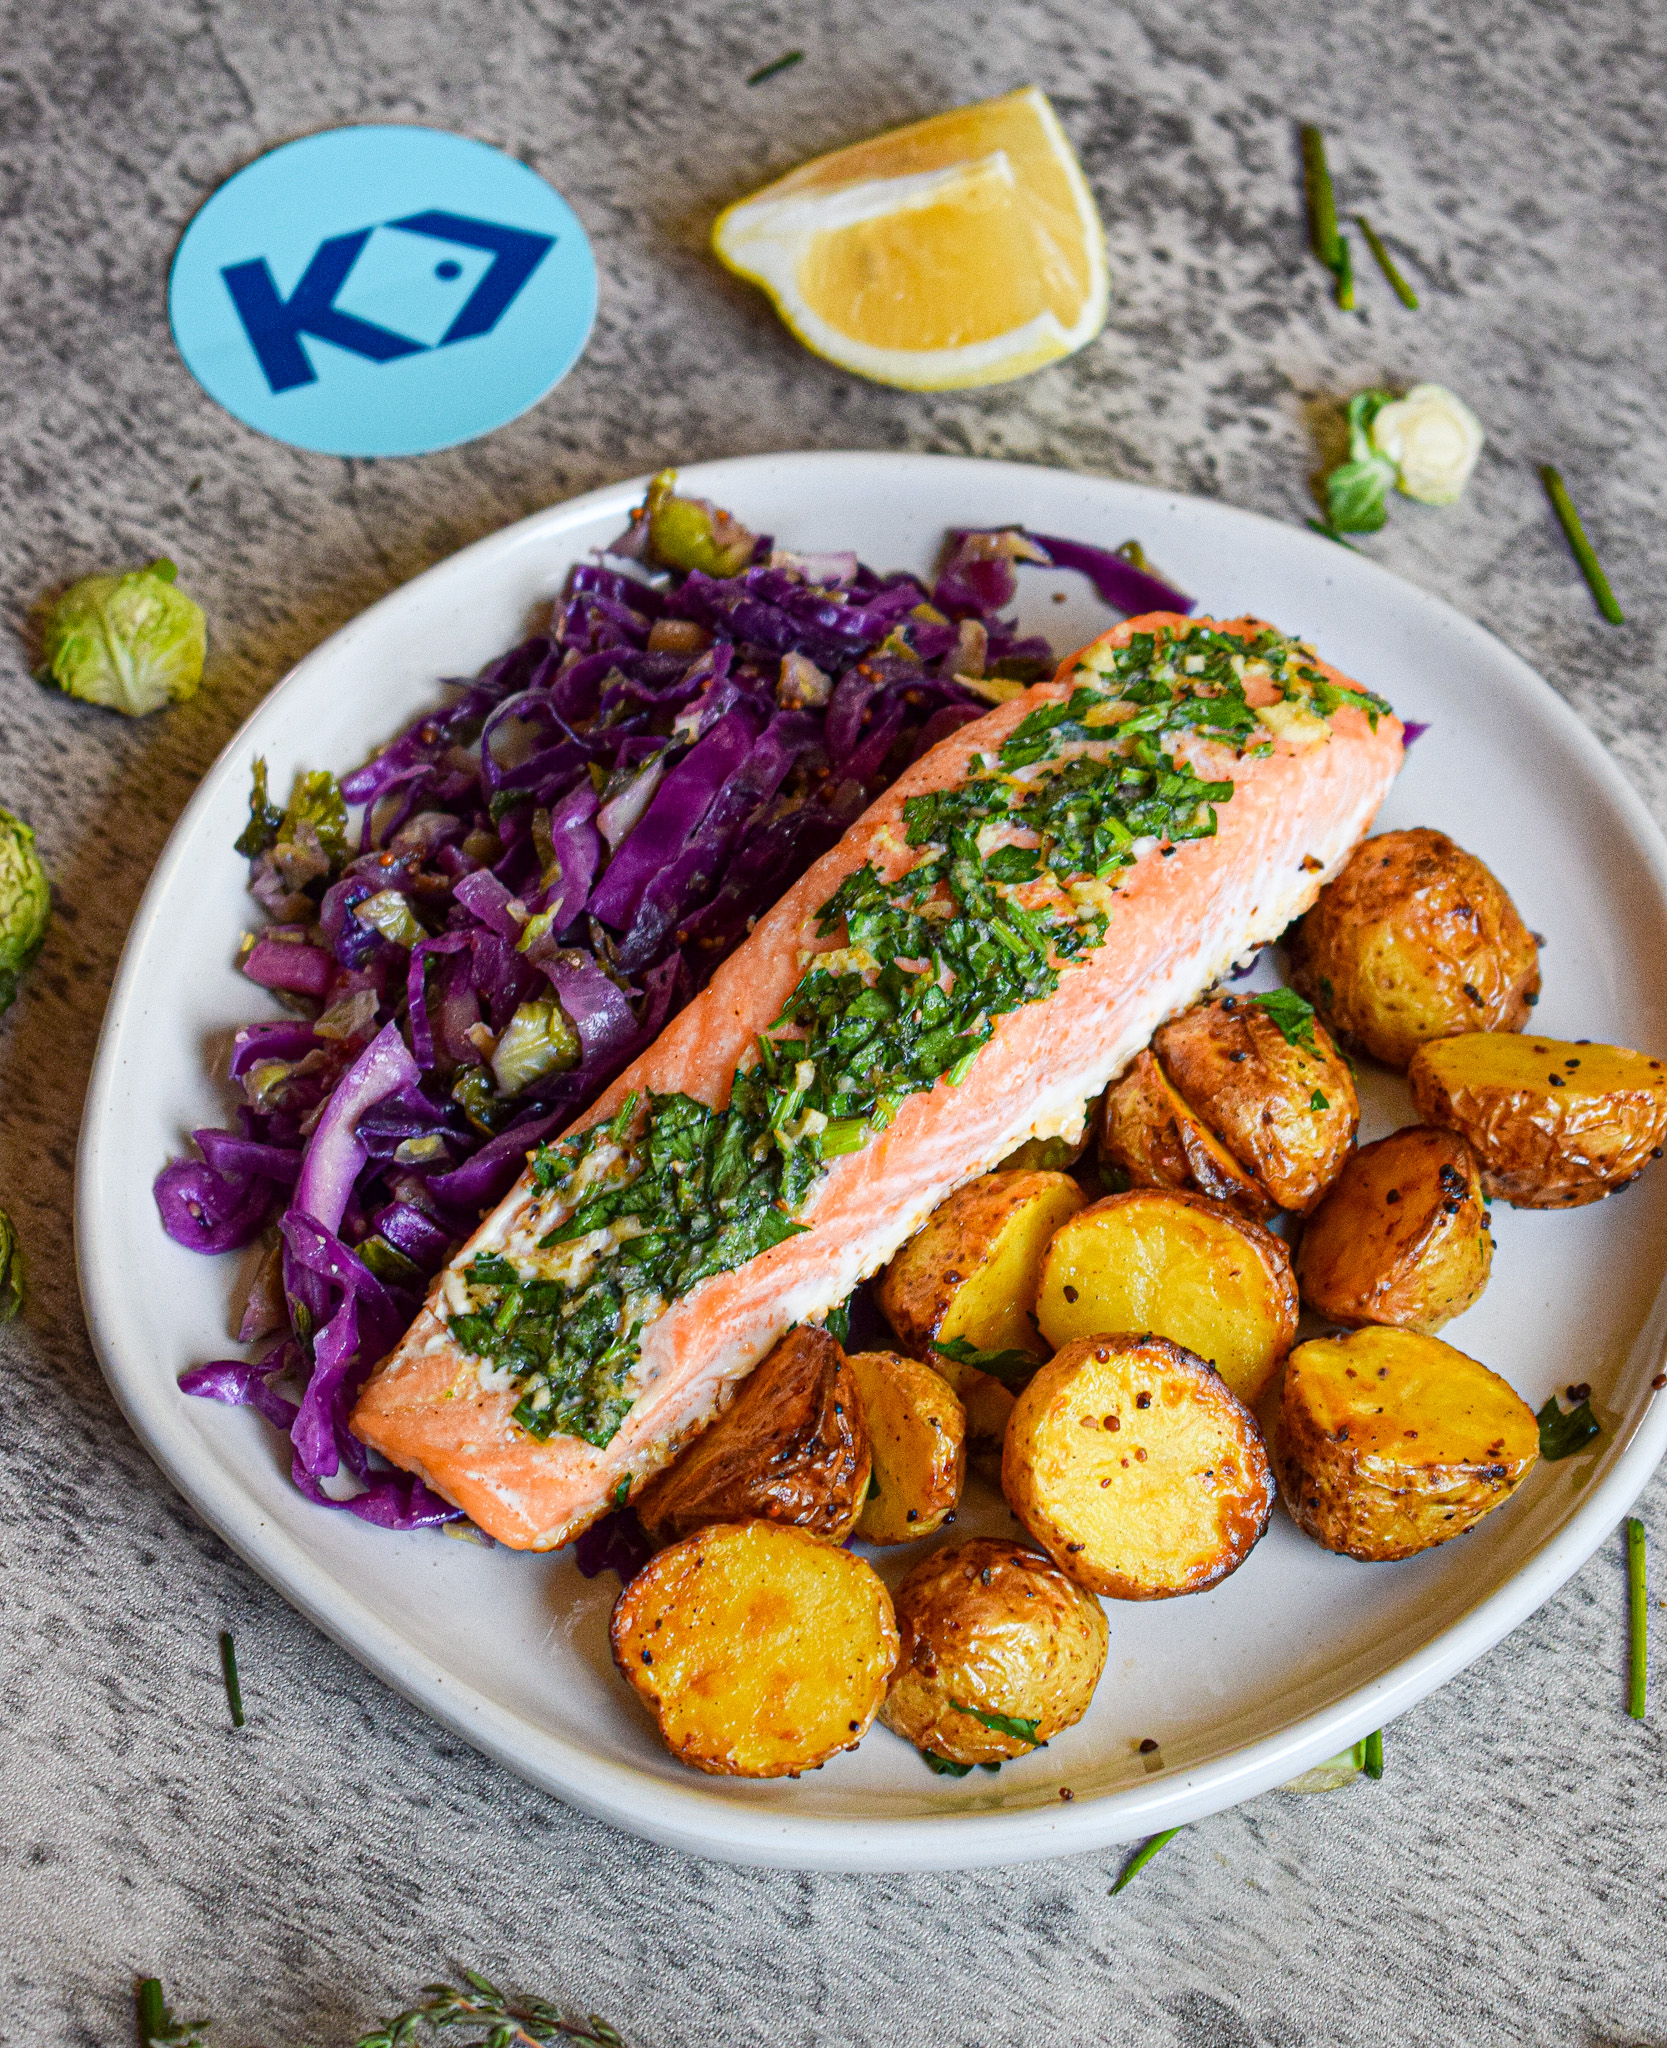 oven roasted salmon with harvest salad and mustard roasted potatoes